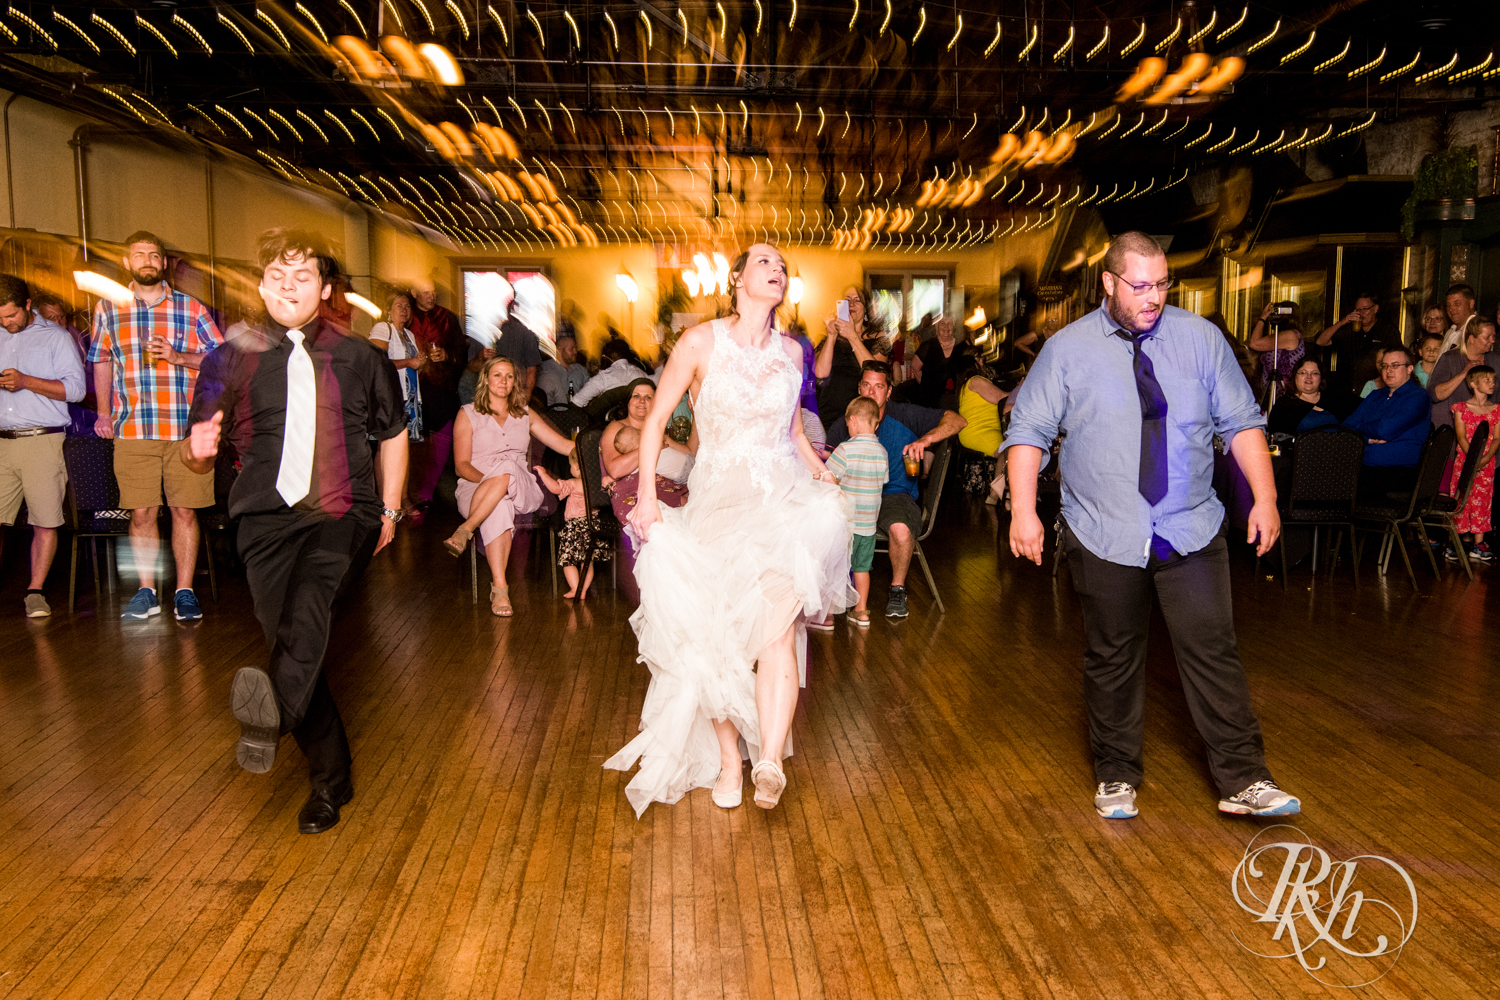 Katie and Brian - Minnesota Wedding Photography - Kellerman's Event Center - RKH Images - Blog  (56 of 58).jpg